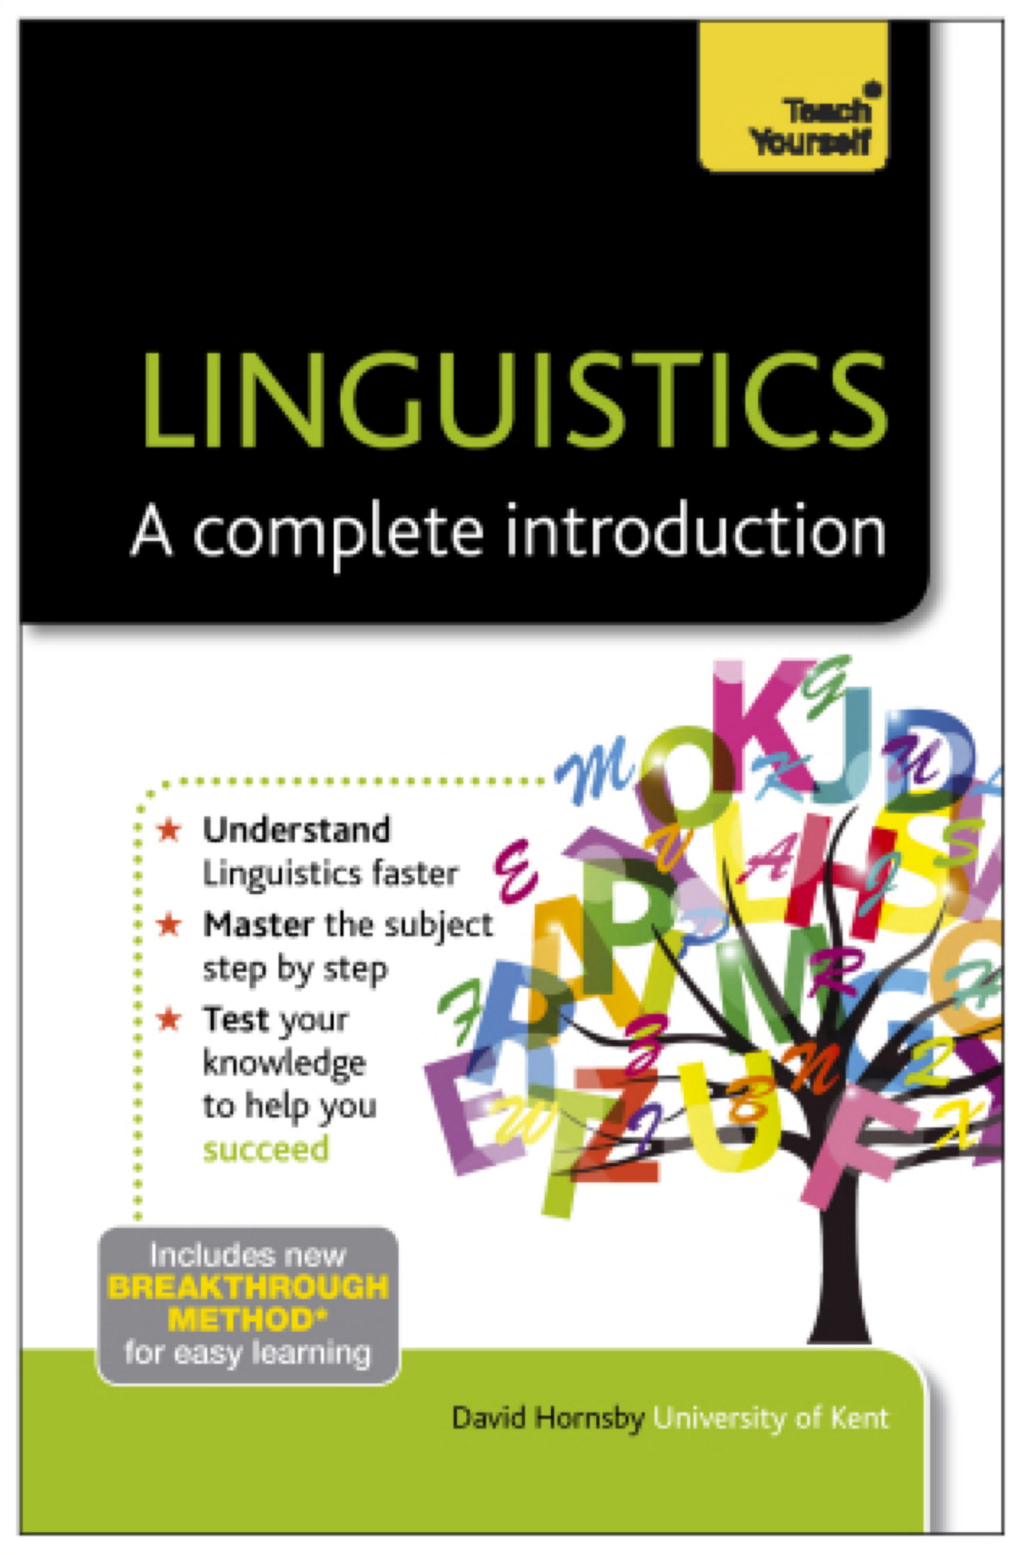 Linguistics - A Complete Introduction: Teach Yourself